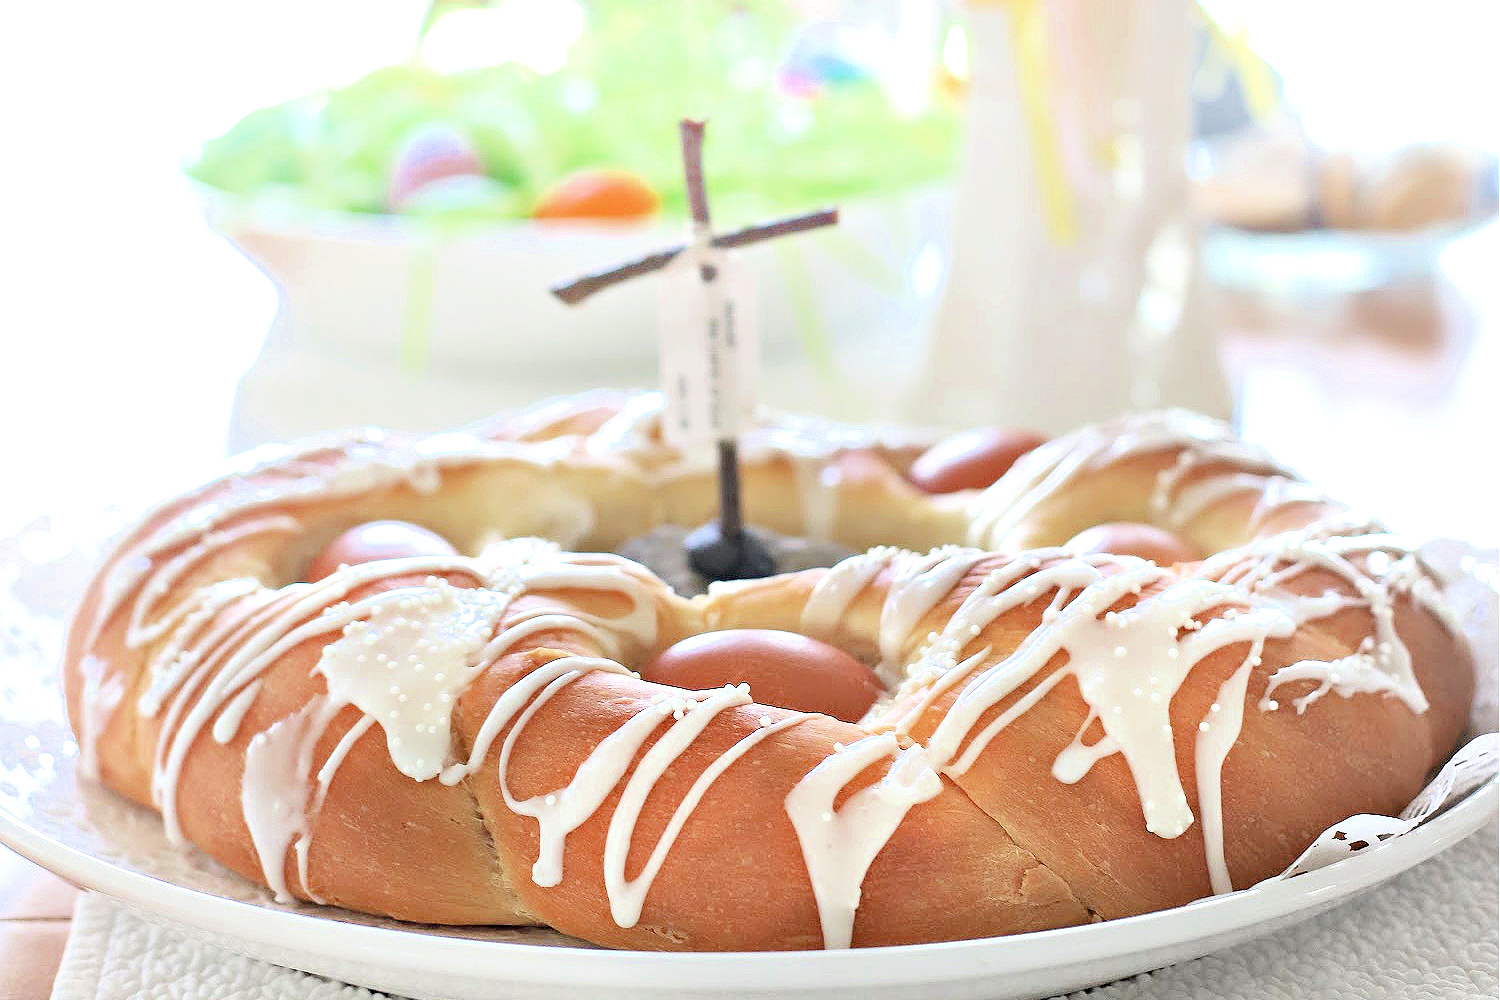 Make a beautiful Easter bread with natural or dyed eggs using a bread maker for the sweet dough.